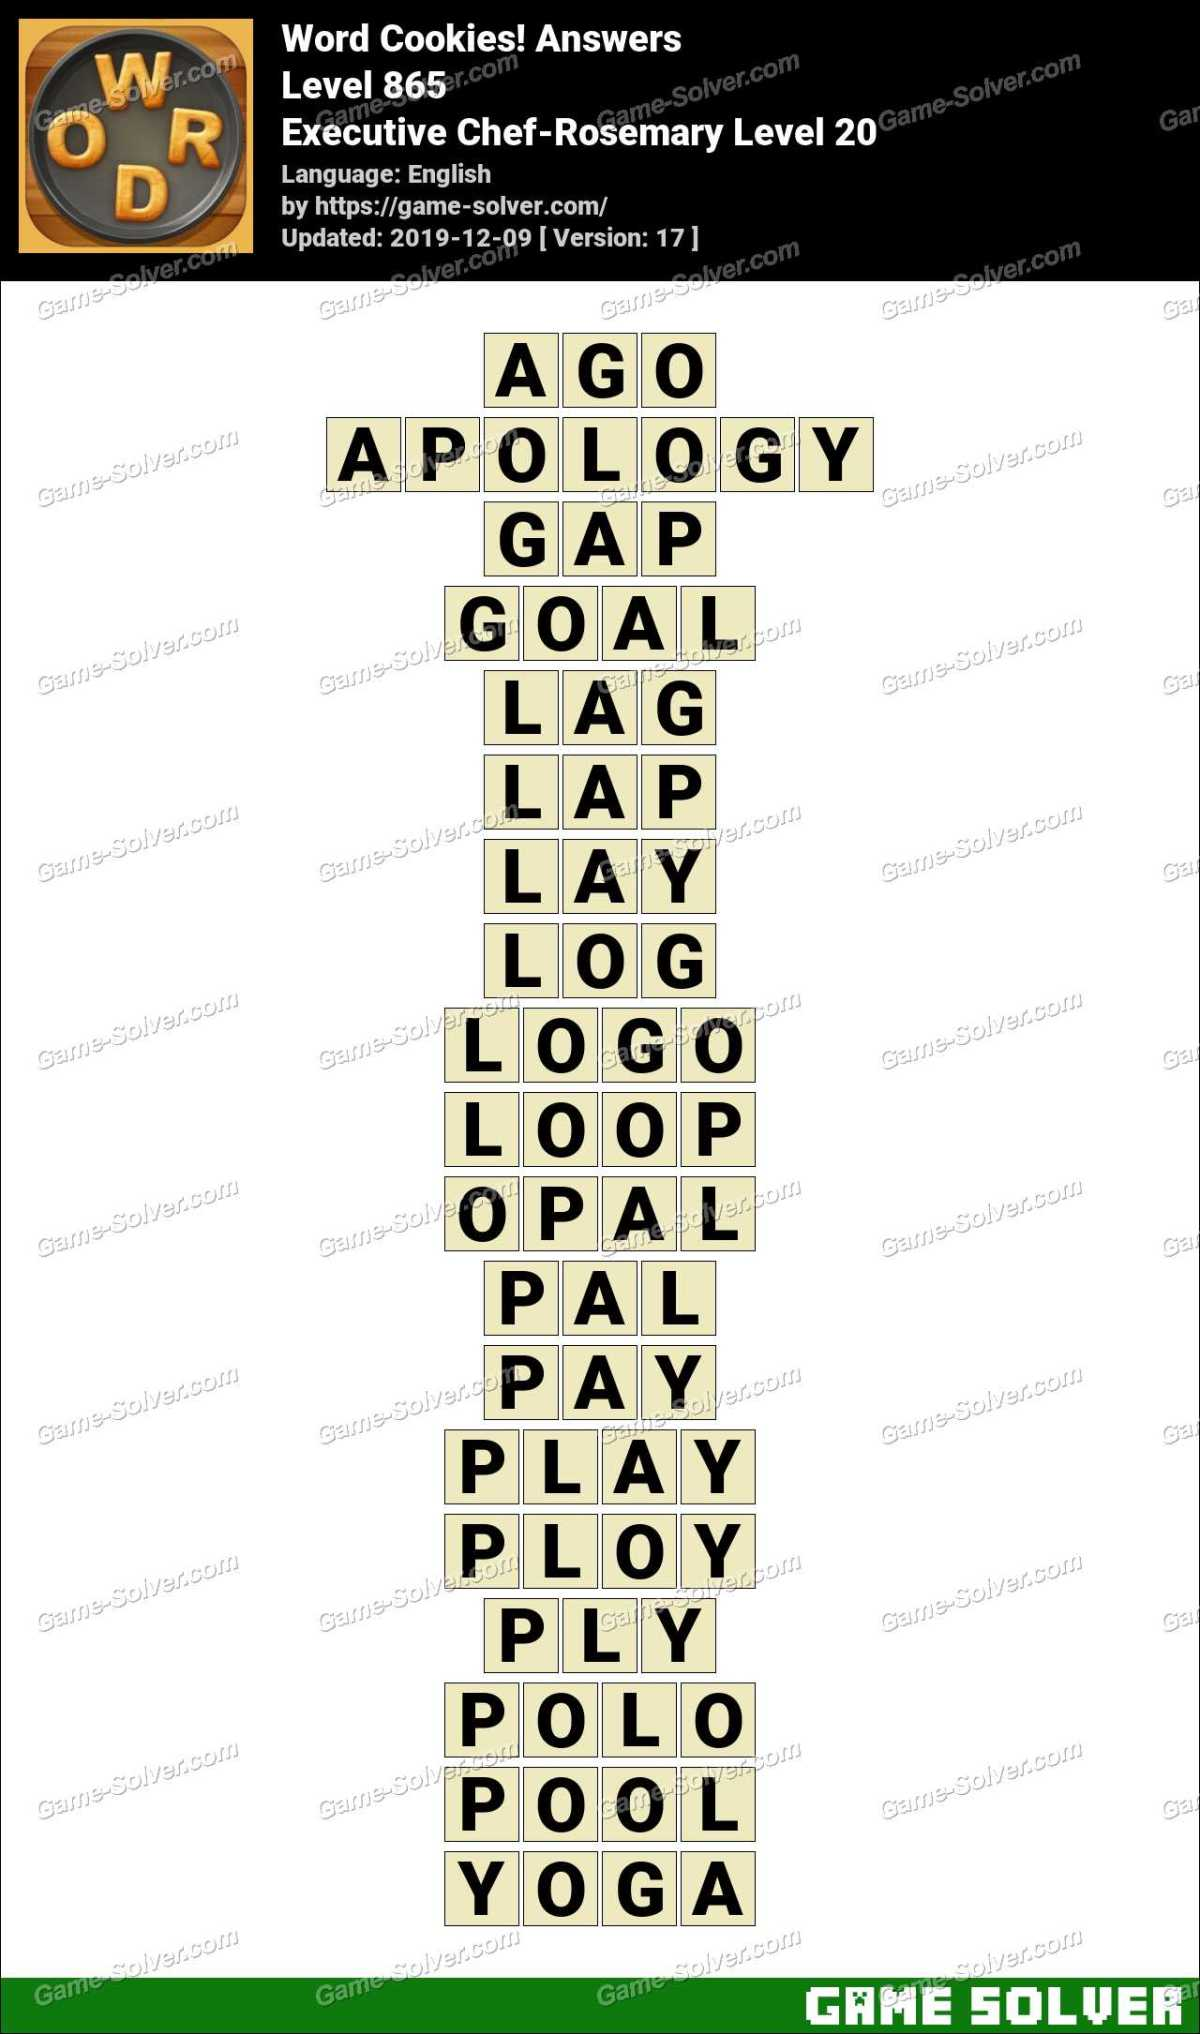 Word Cookies Executive Chef-Rosemary Level 20 Answers